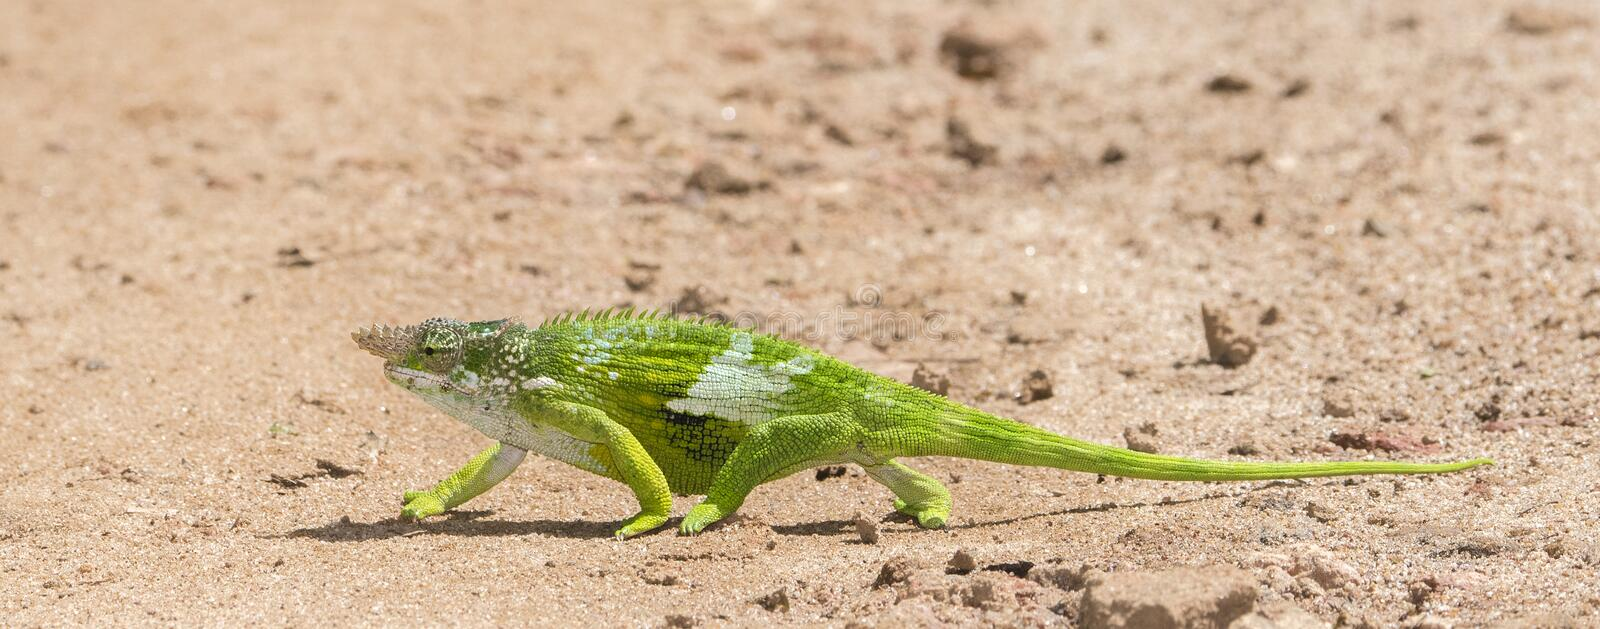 The Endemic & Threatened Usambara Two-horned Chameleon Kinyongia multituberculata in Tanzania royalty free stock photos